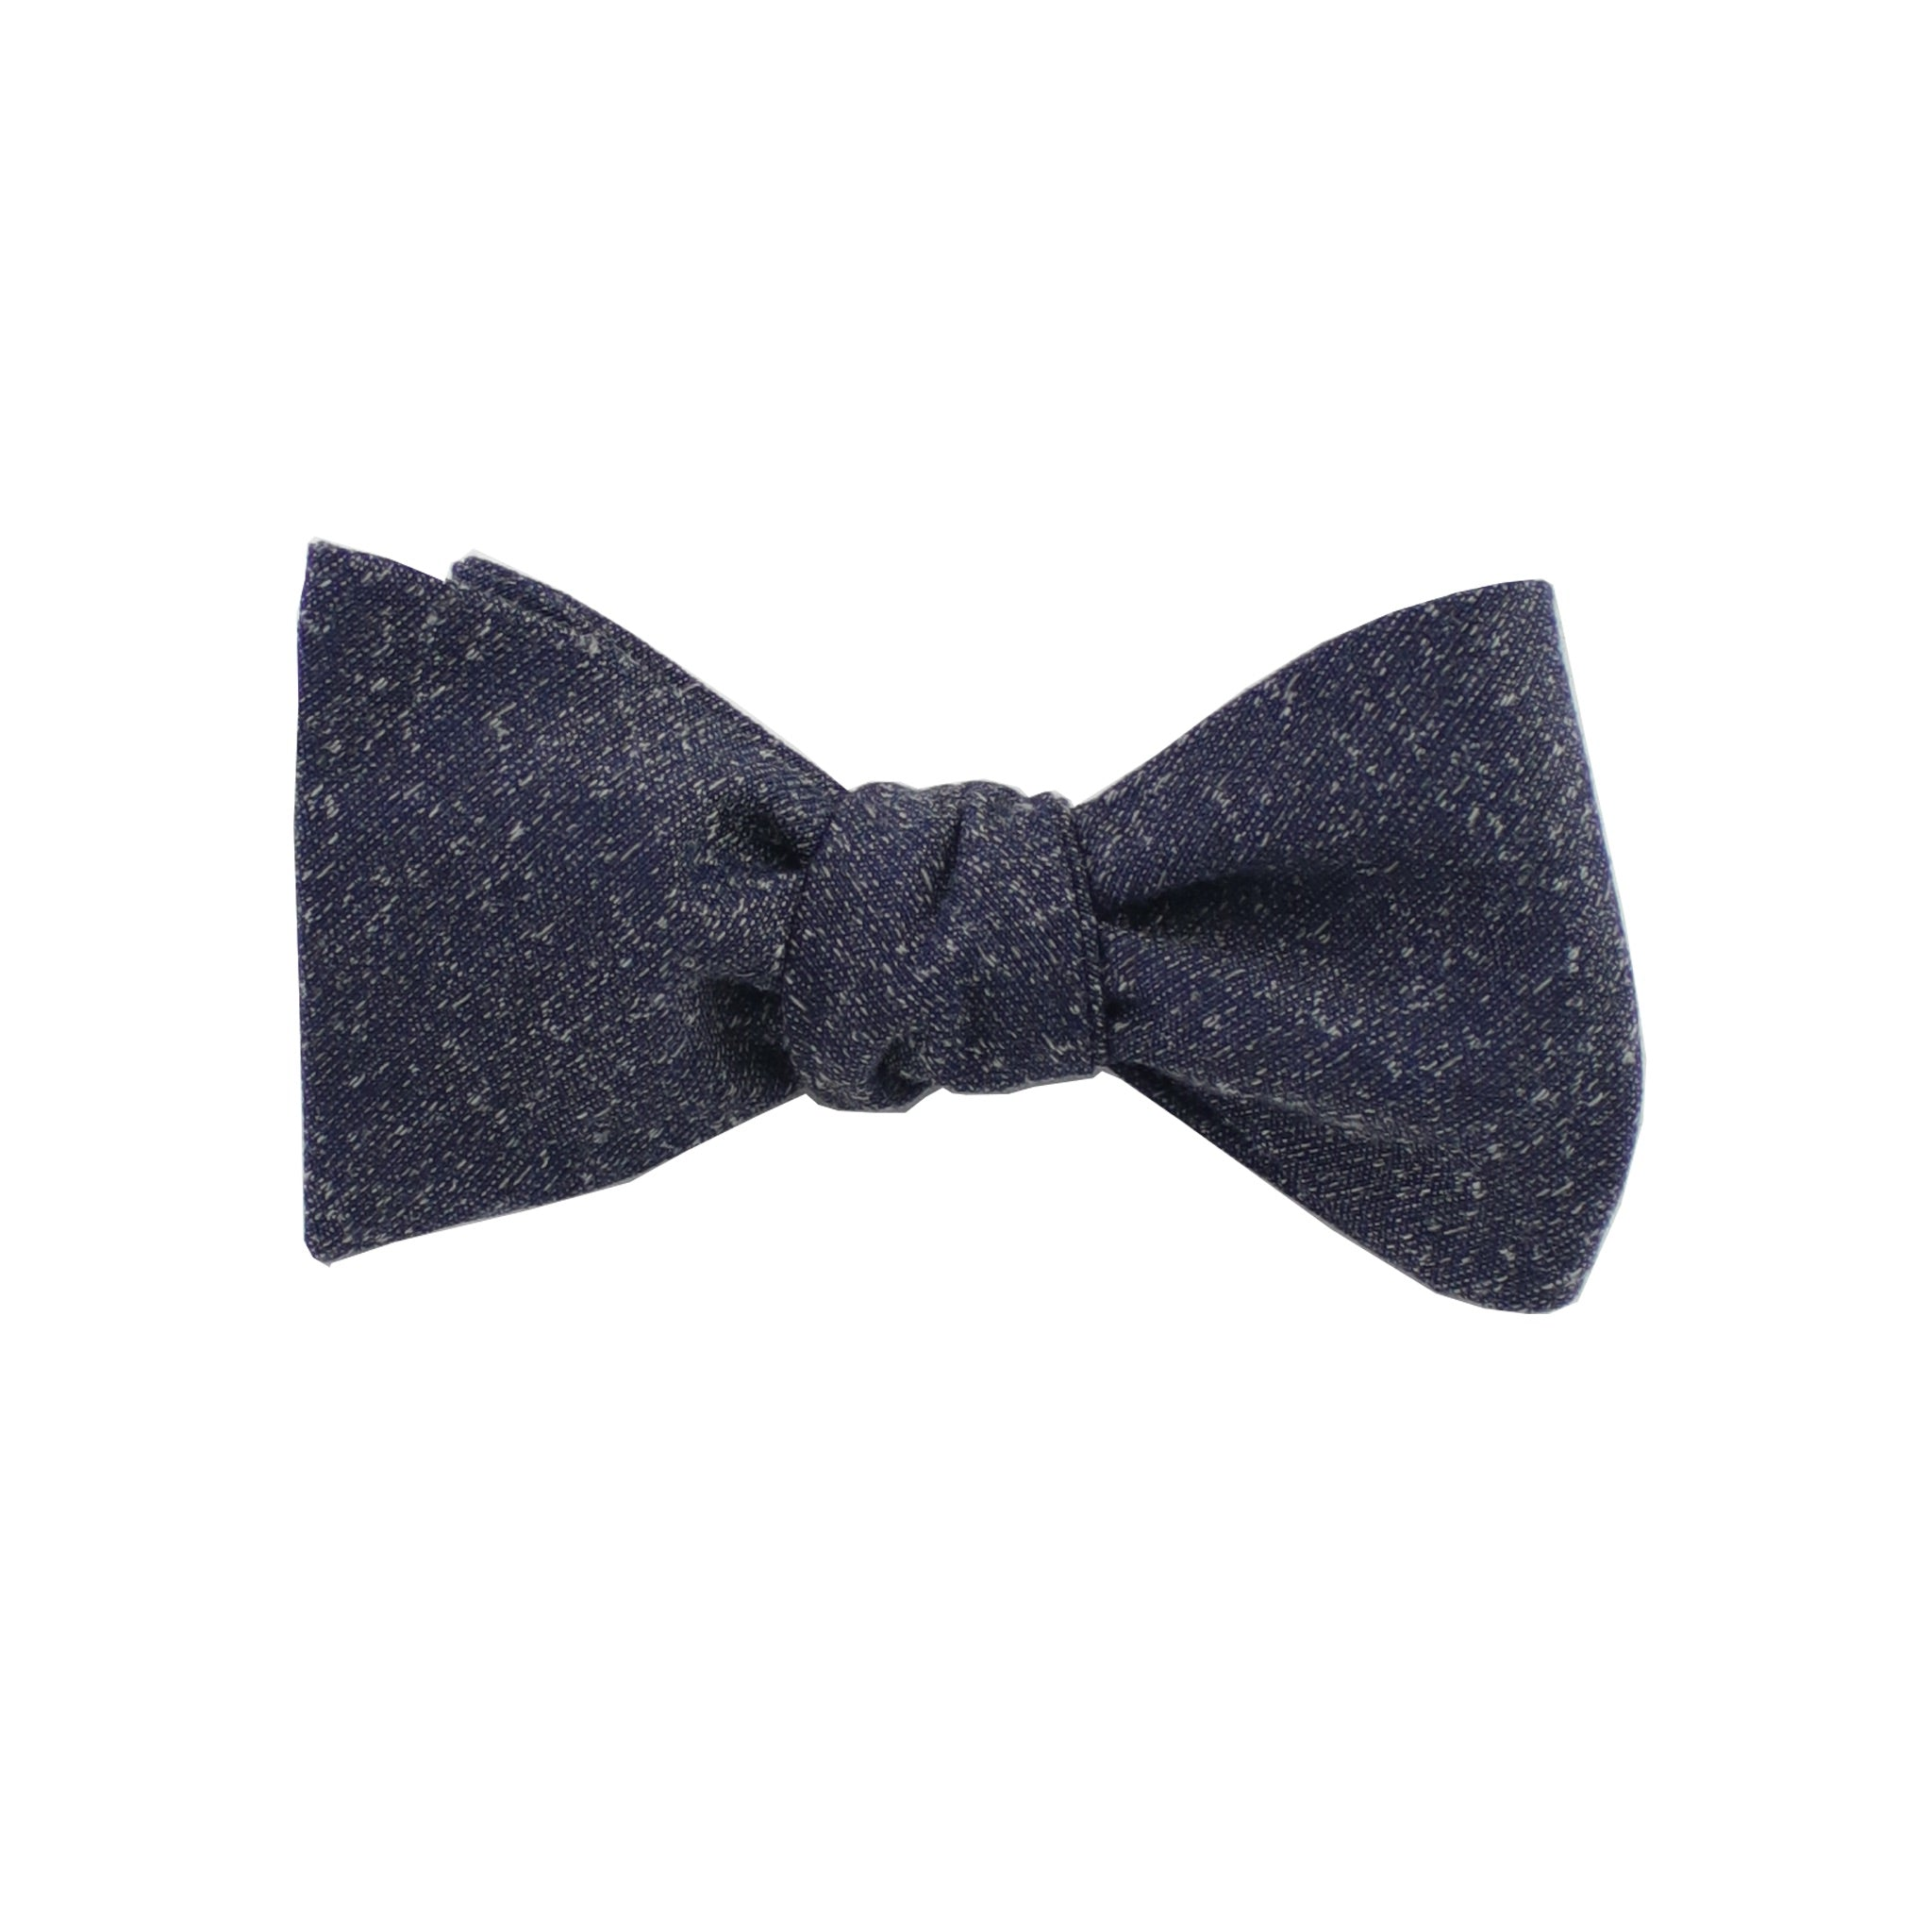 Grey Speck Self Tie Bow Tie from DIBI